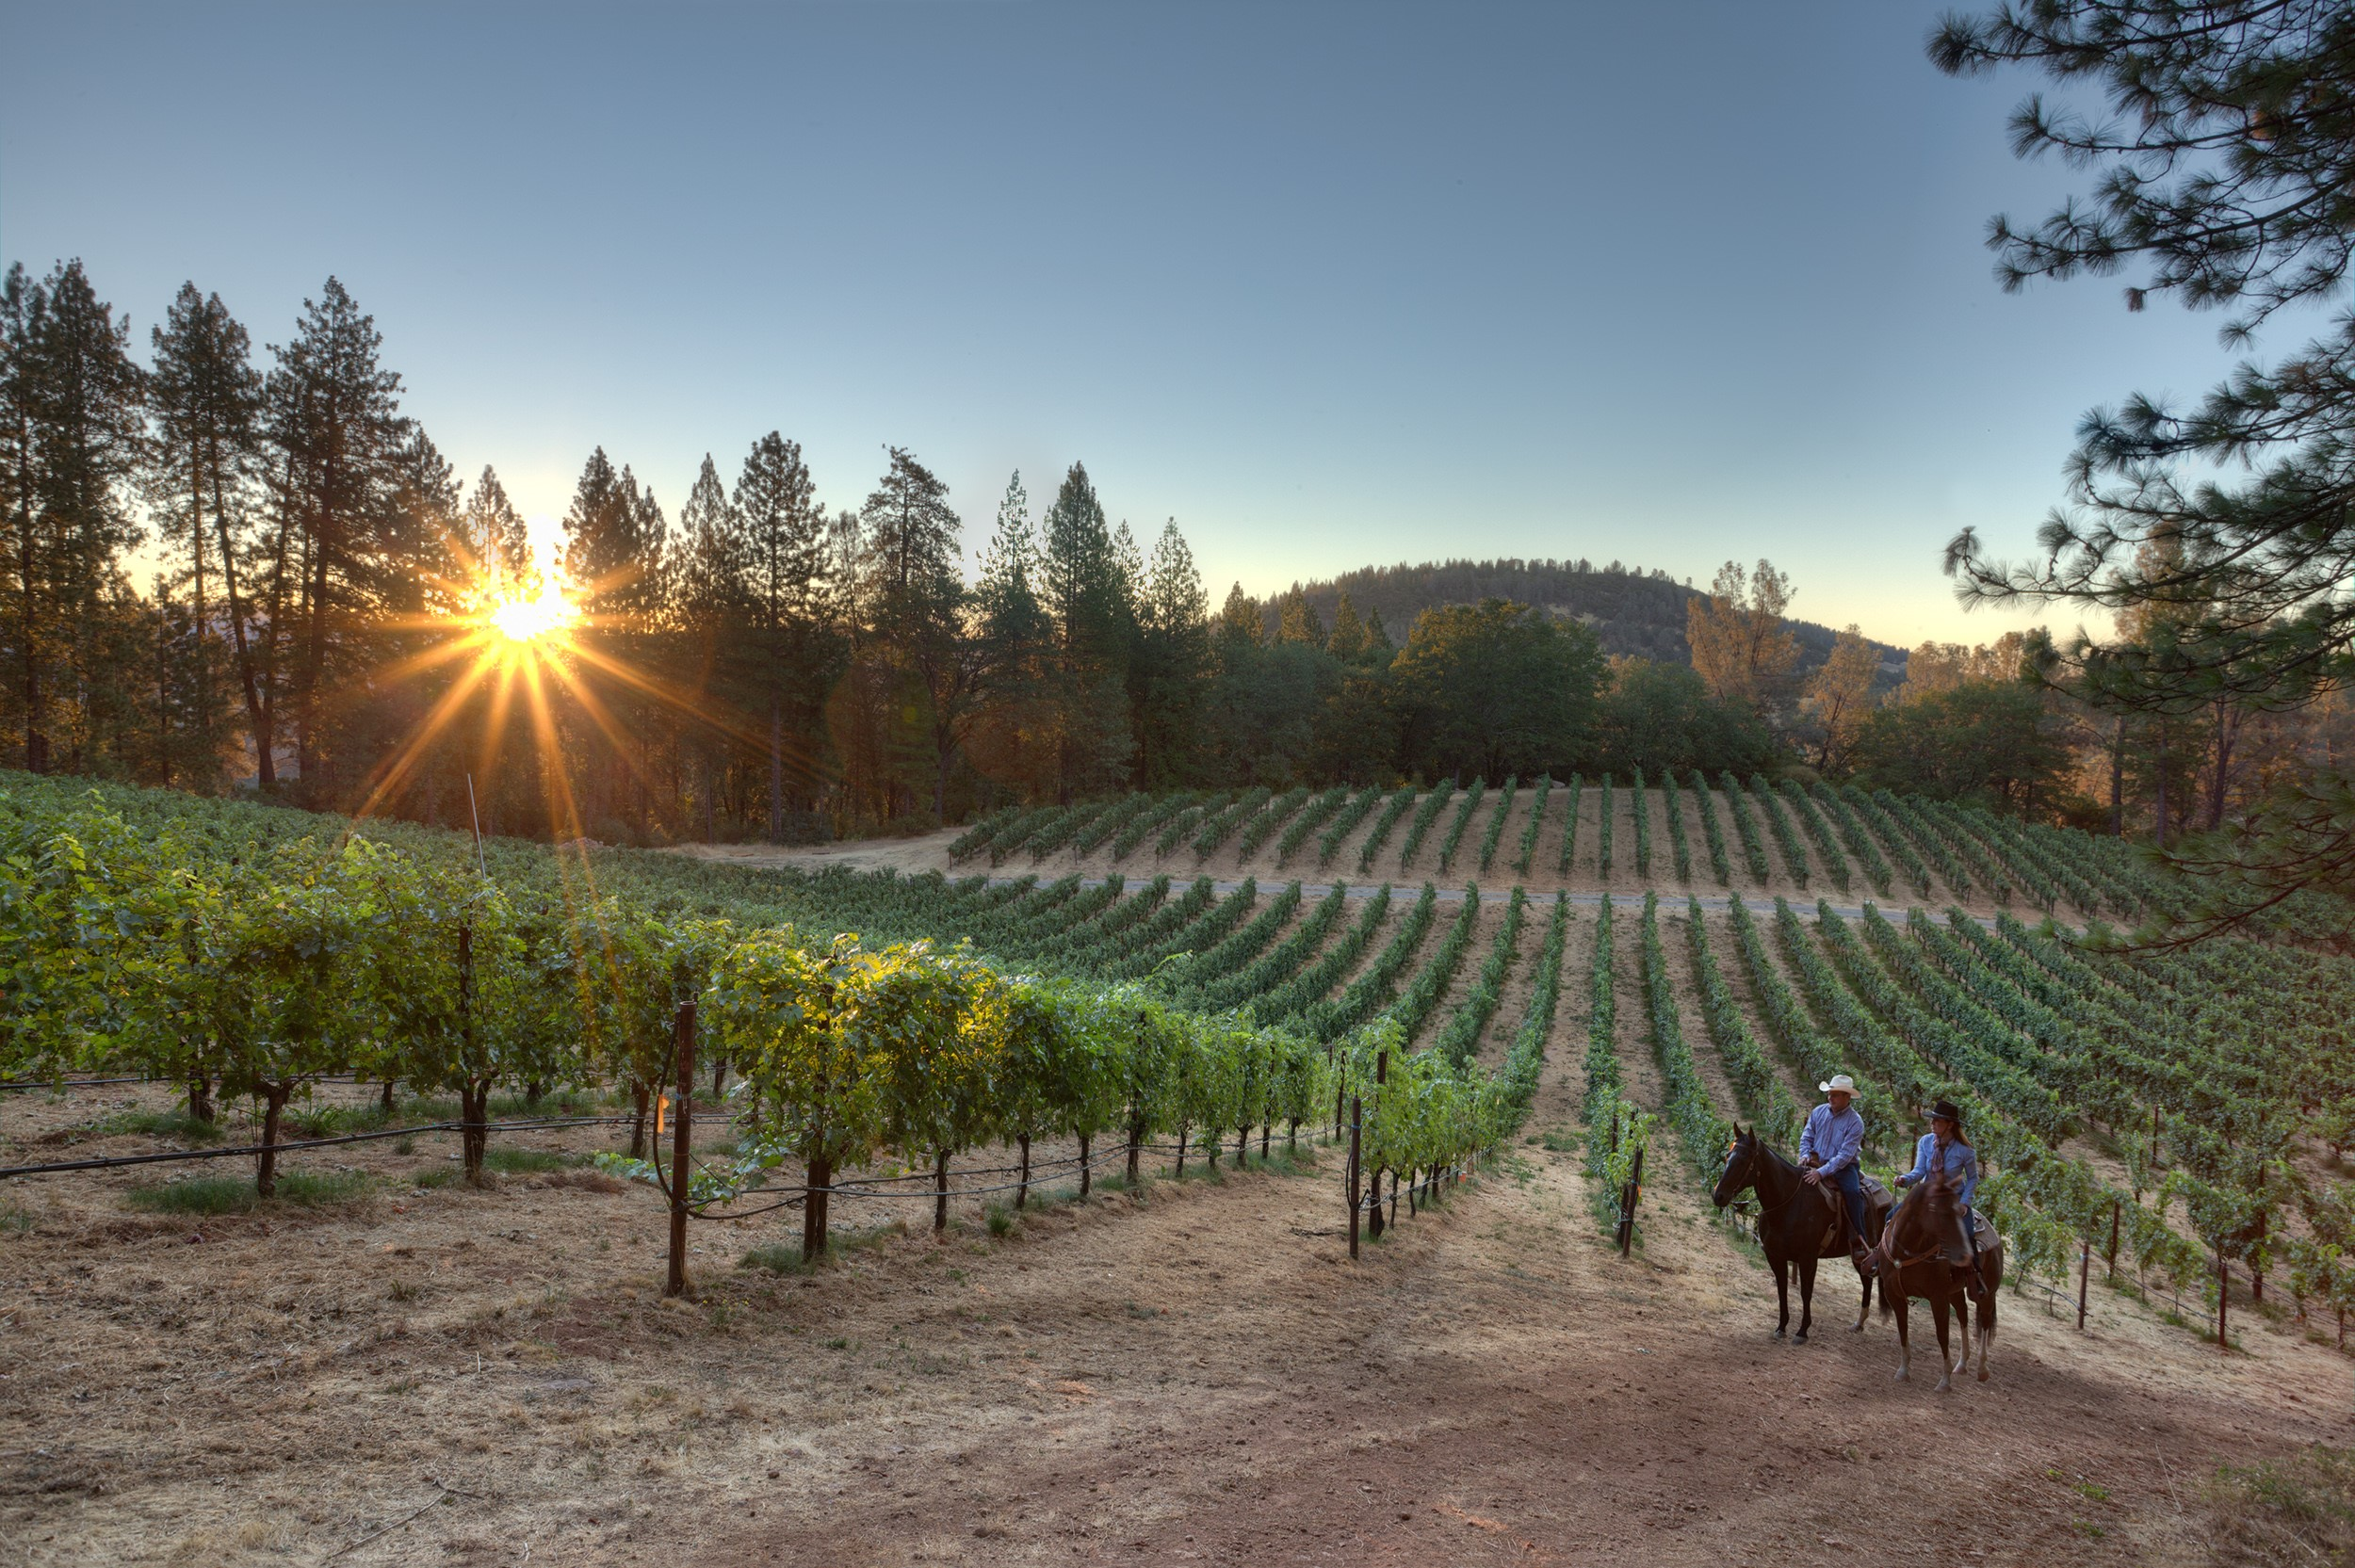 Lake & Mendocino County Wines Share a Passion